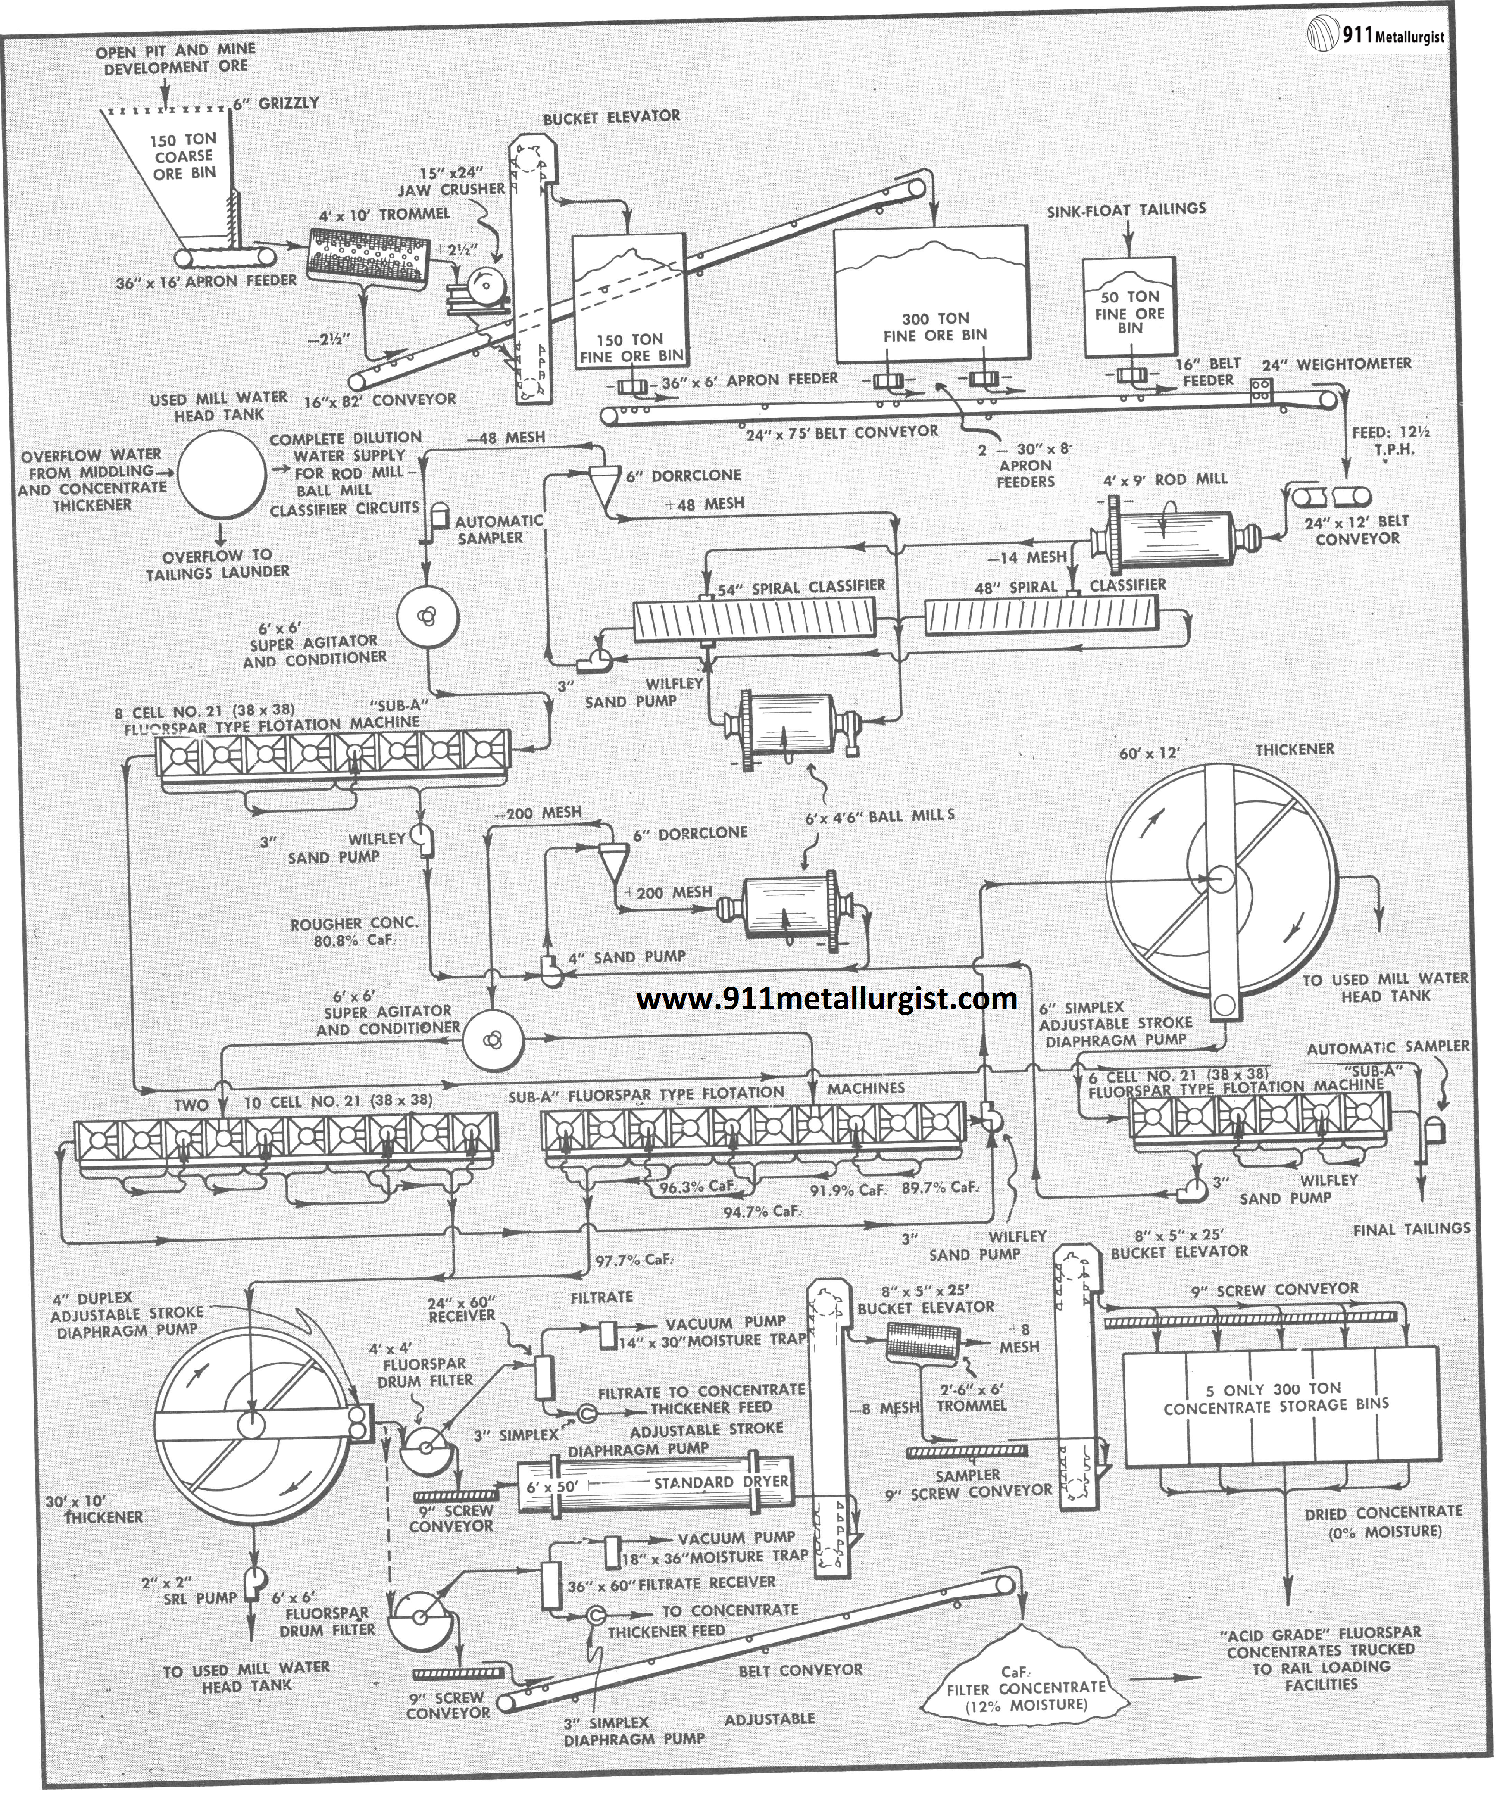 Flowsheet of an Operating